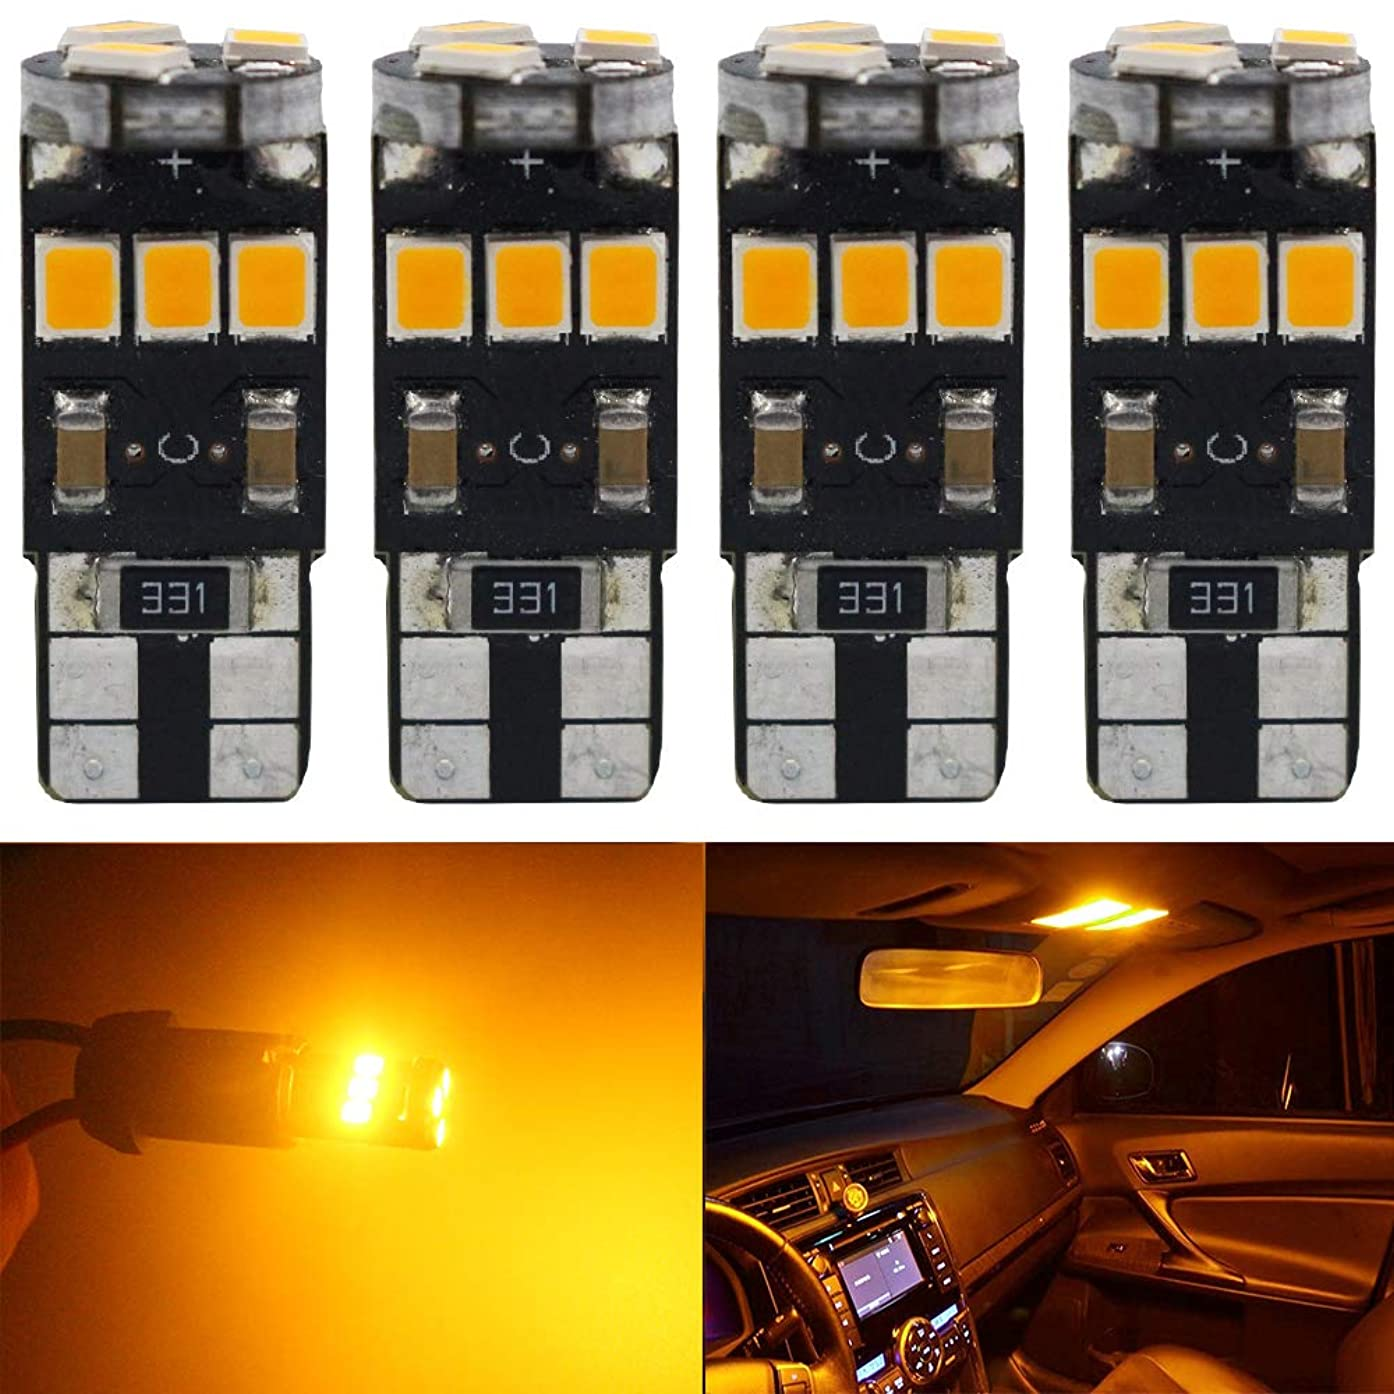 4-Pack T10 194 168 921 Amber/Yellow Extremely Bright Canbus Error Free LED Light 12V,9-SMD 2835 Chipsets Car Replacement Bulb For W5W 168 2825 Map Dome Courtesy License Plate Side Marker Light